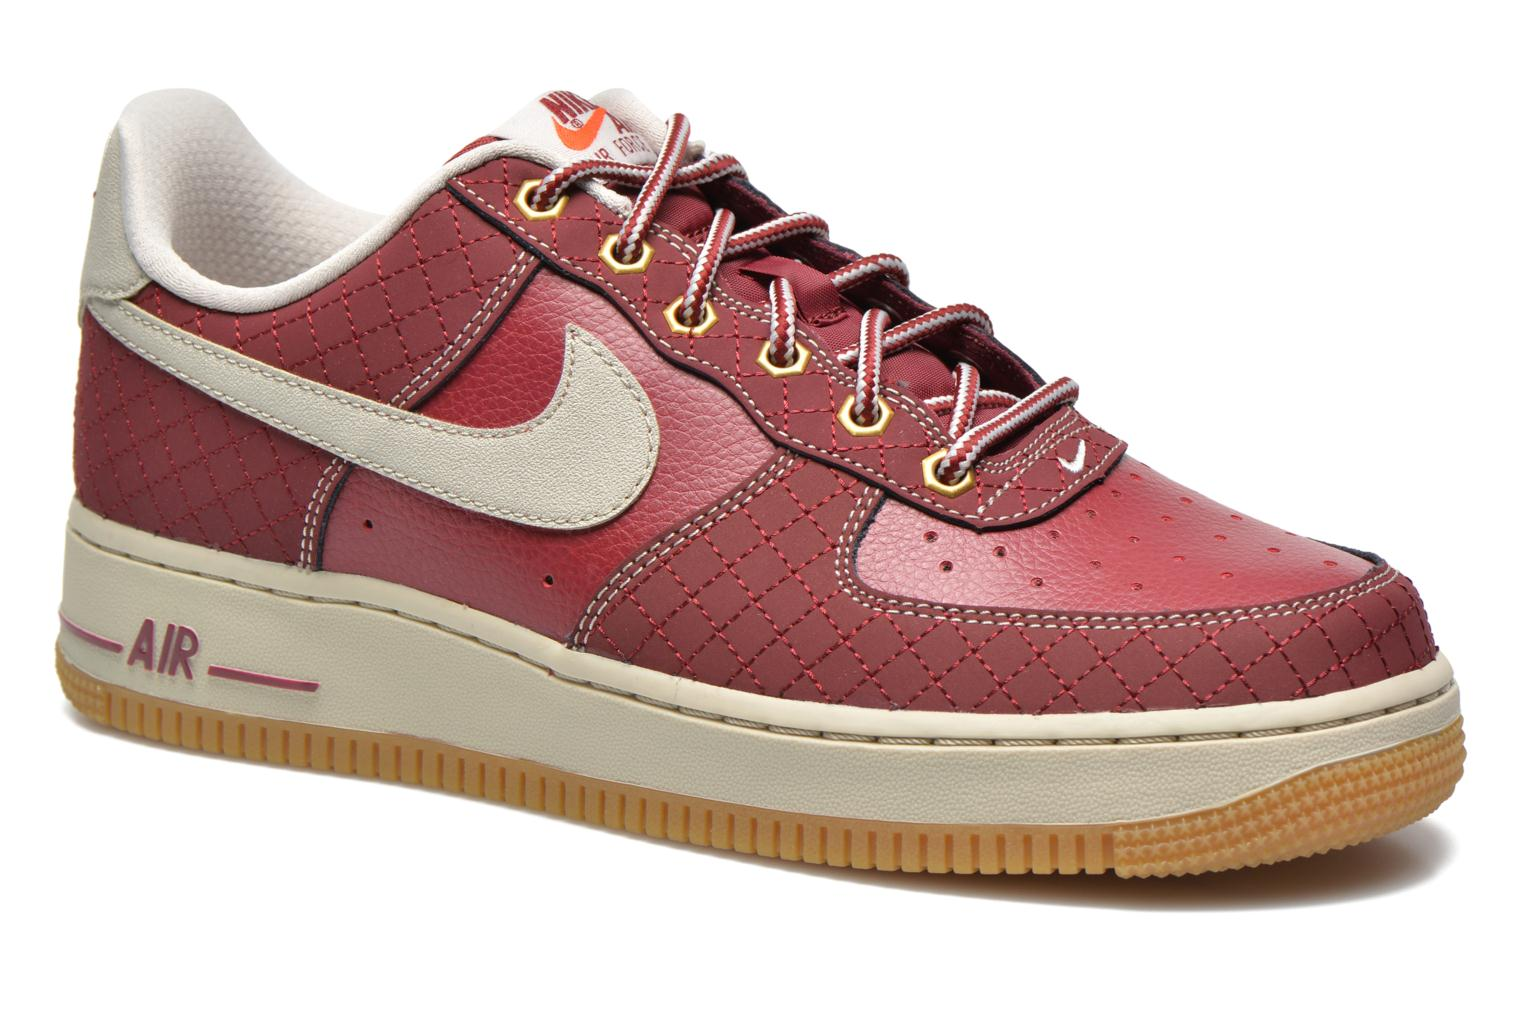 Quicksilver Ireland Nike Force 1 Air 6826e Abea7 XZPiku